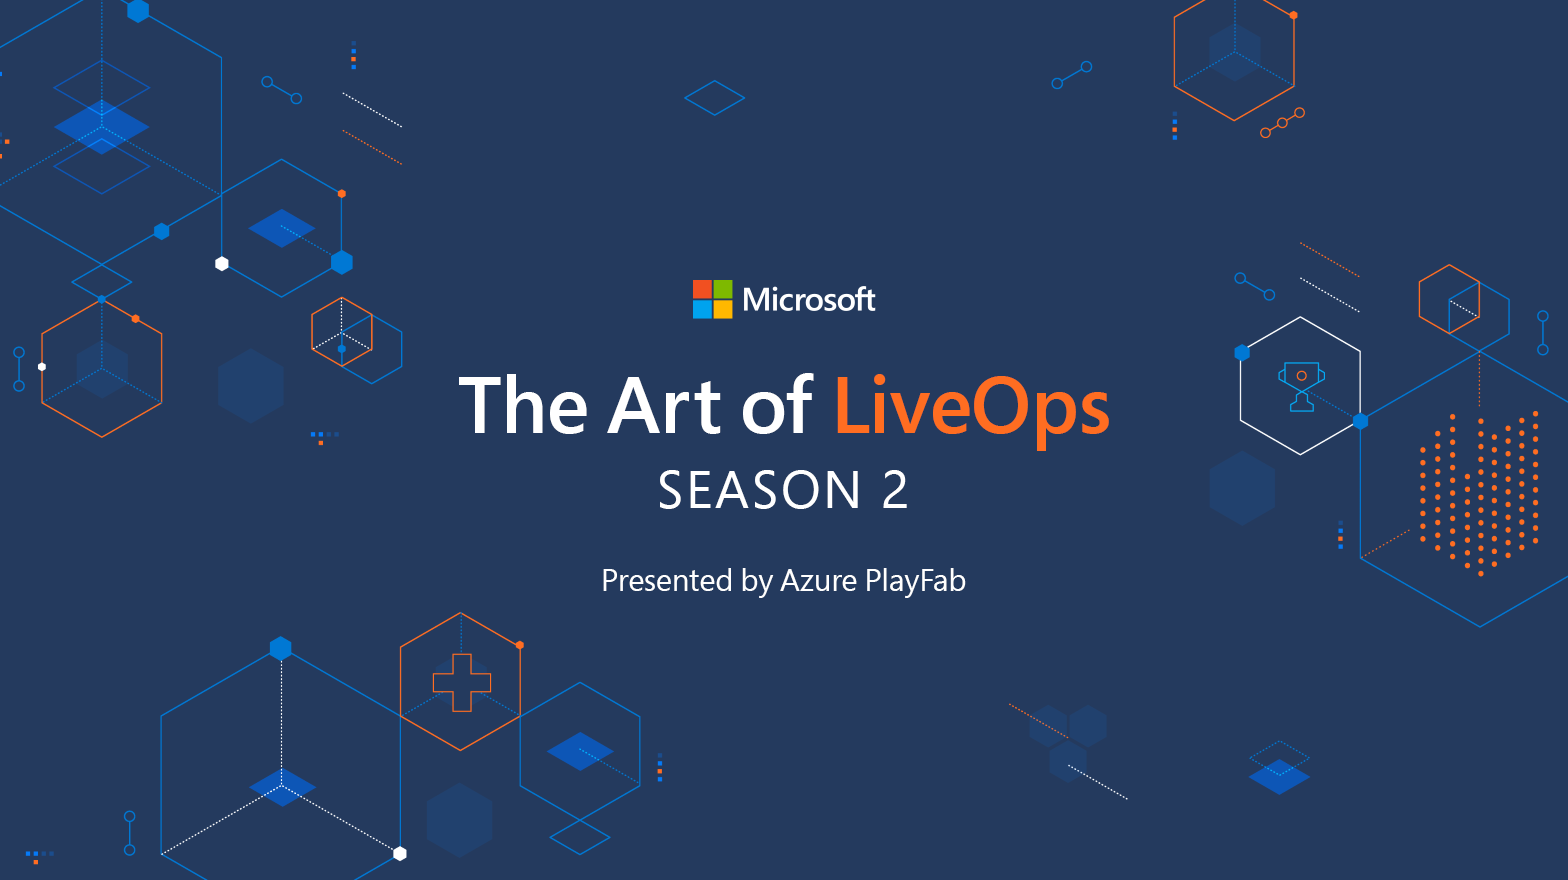 The Art of LiveOps Season 2 Presented by Azure PlayFab